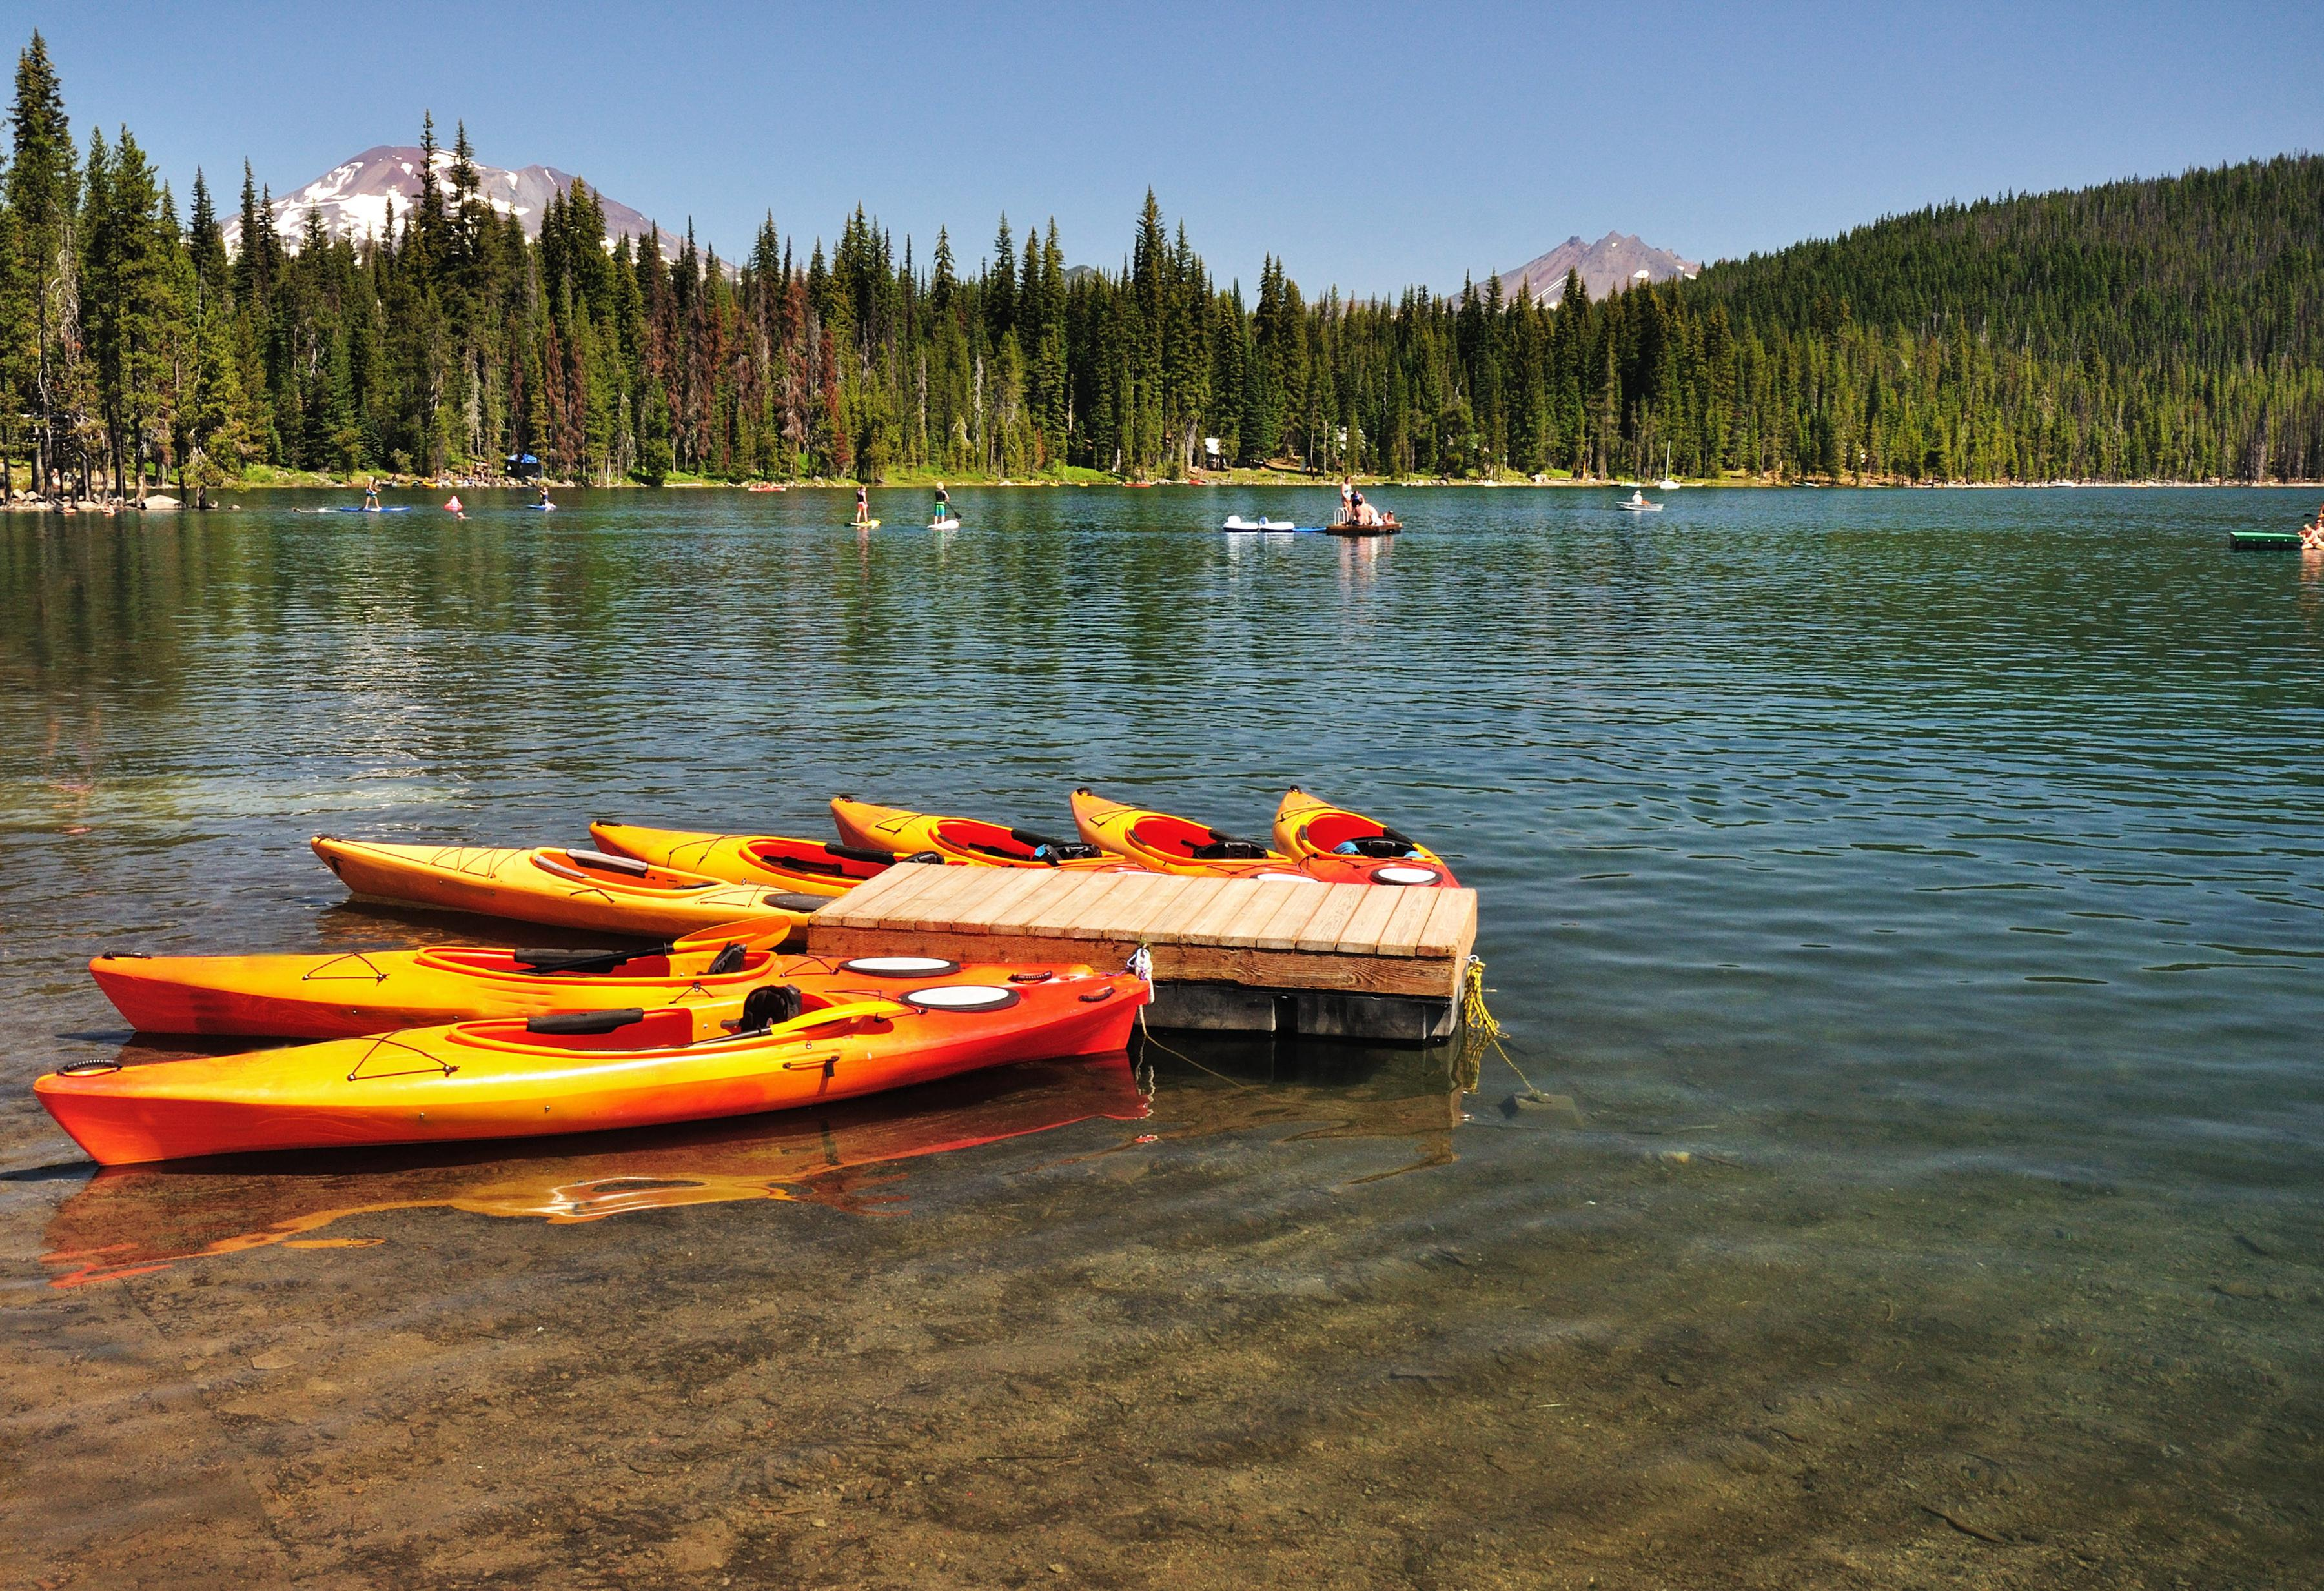 Launch a paddleboard or kayak for an aquatic adventure.